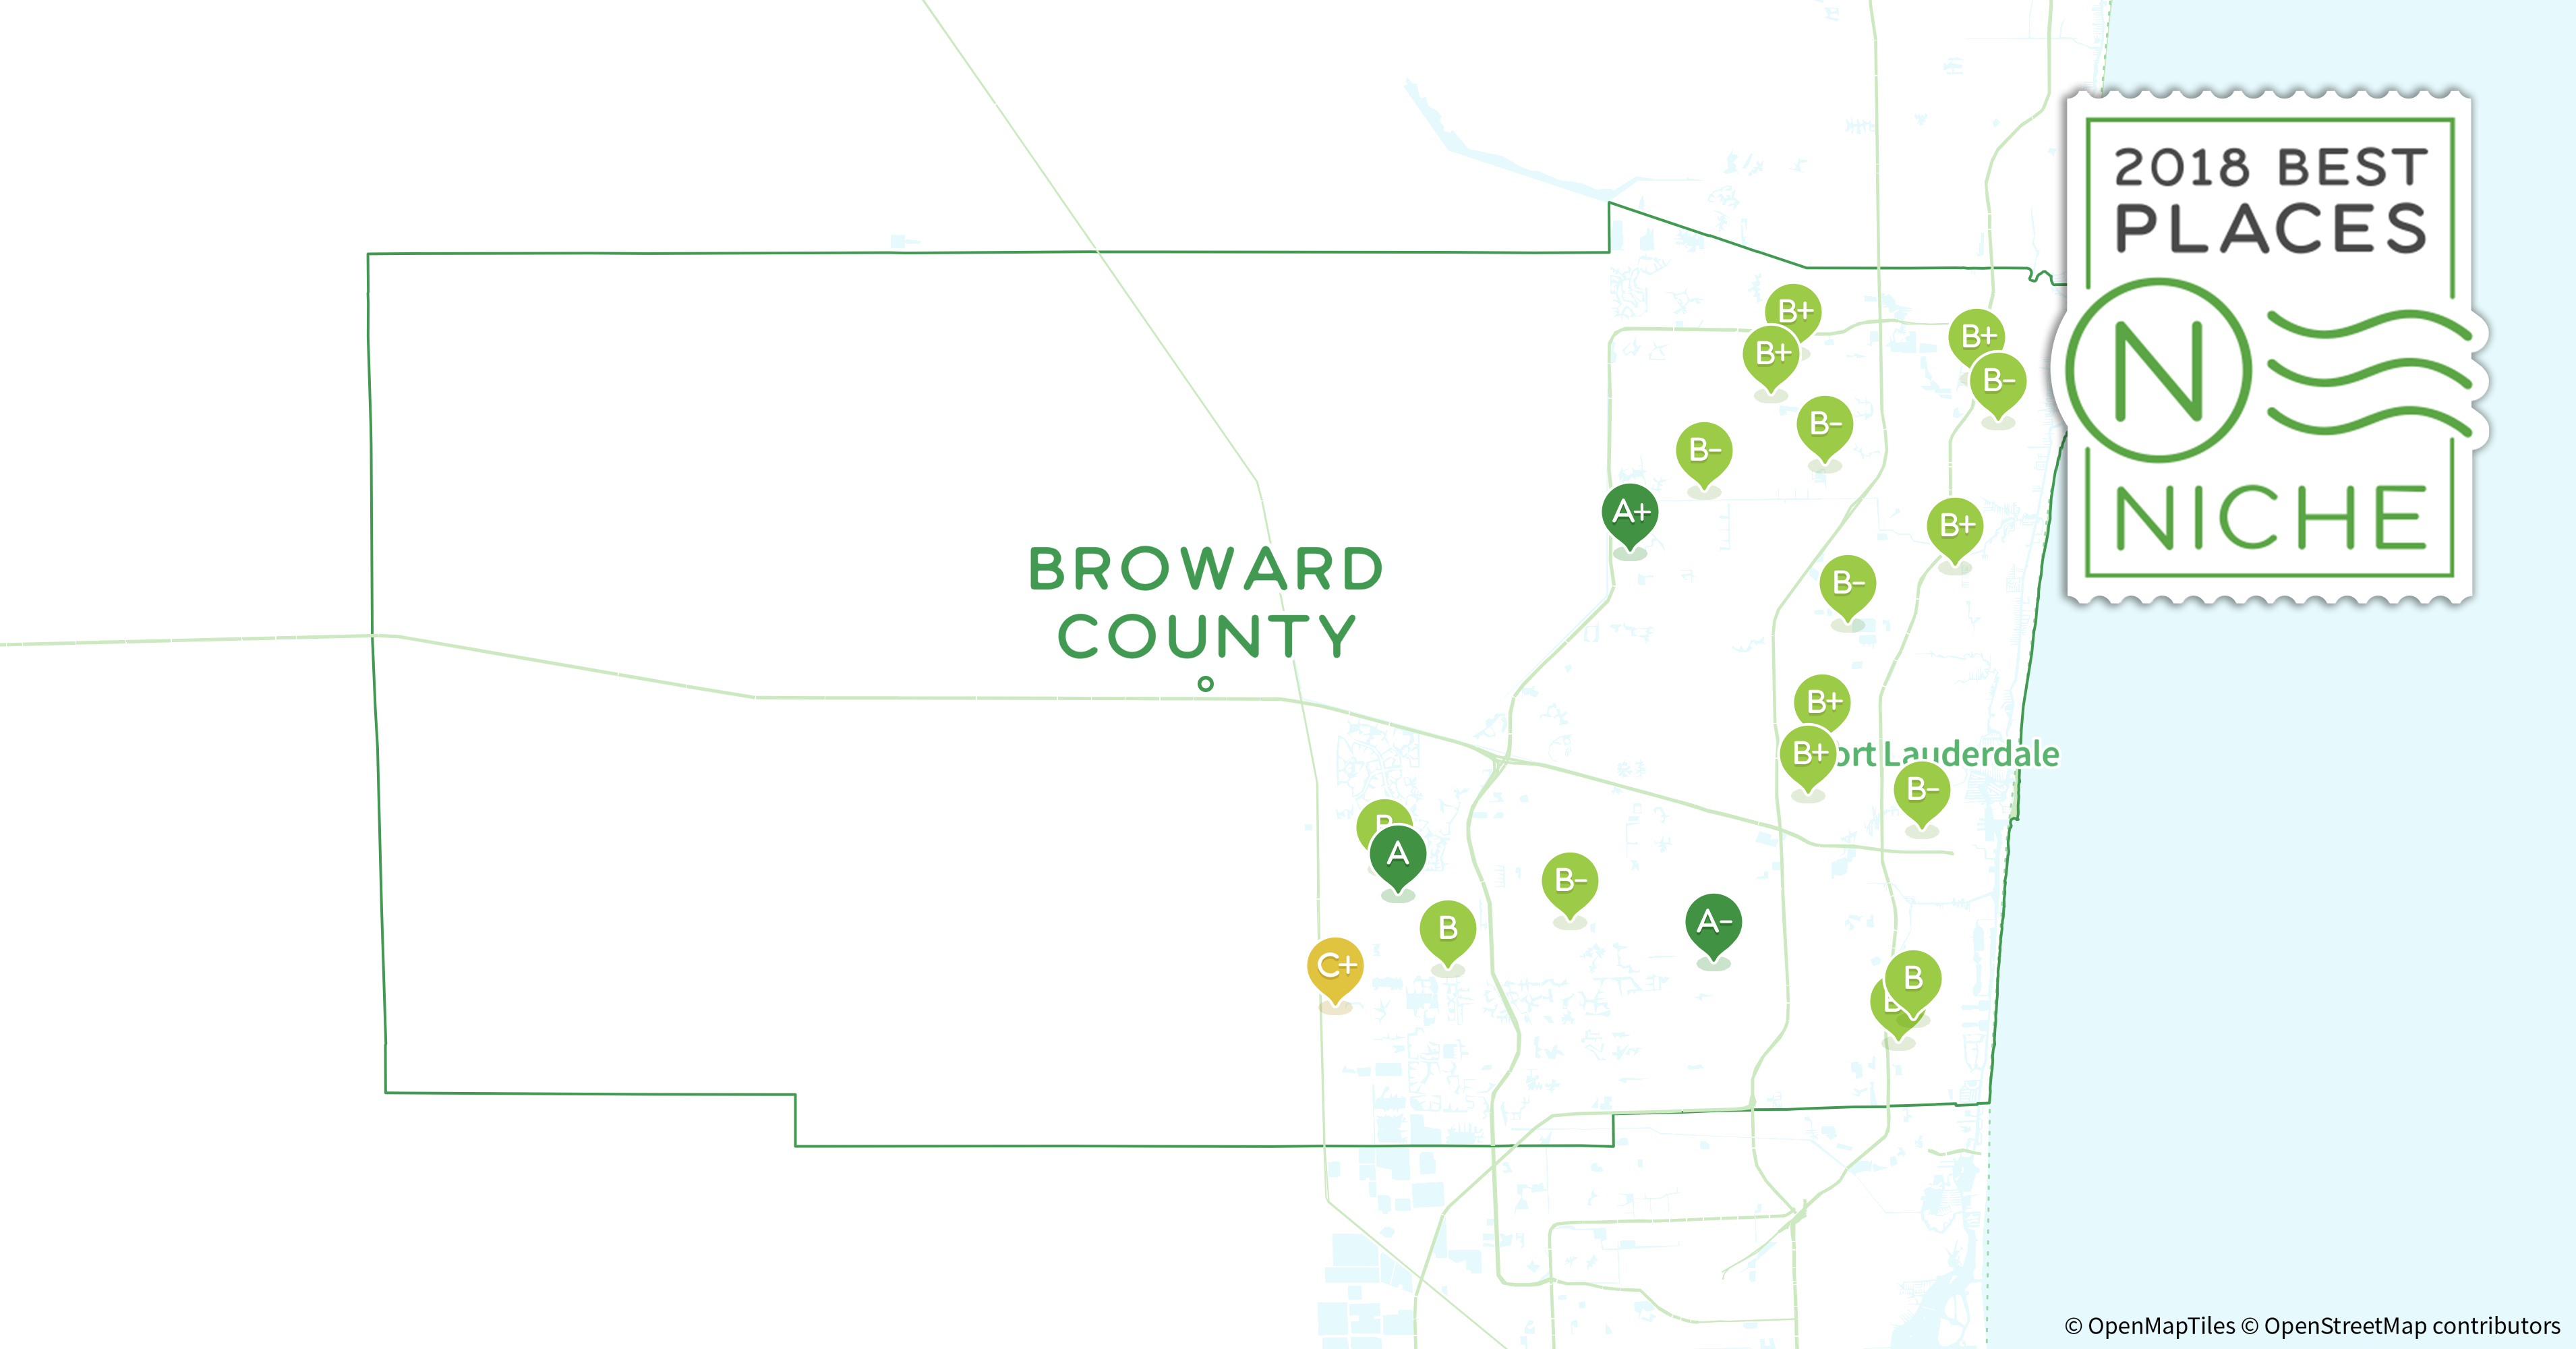 2018 Best Places to Live in Broward County, FL - Niche